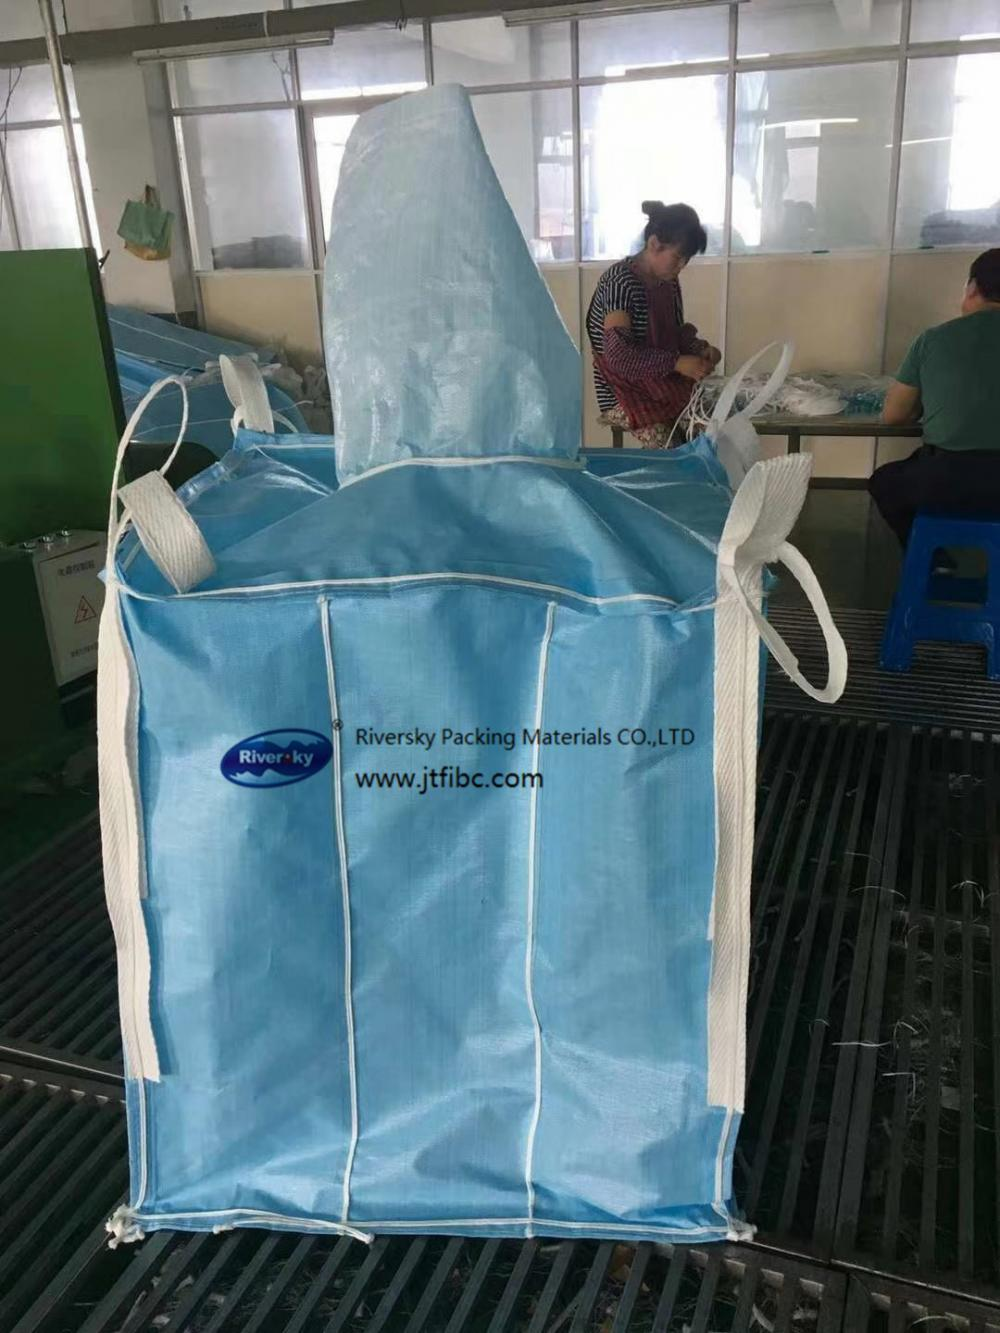 Flexible Intermediate Bulk Container Market